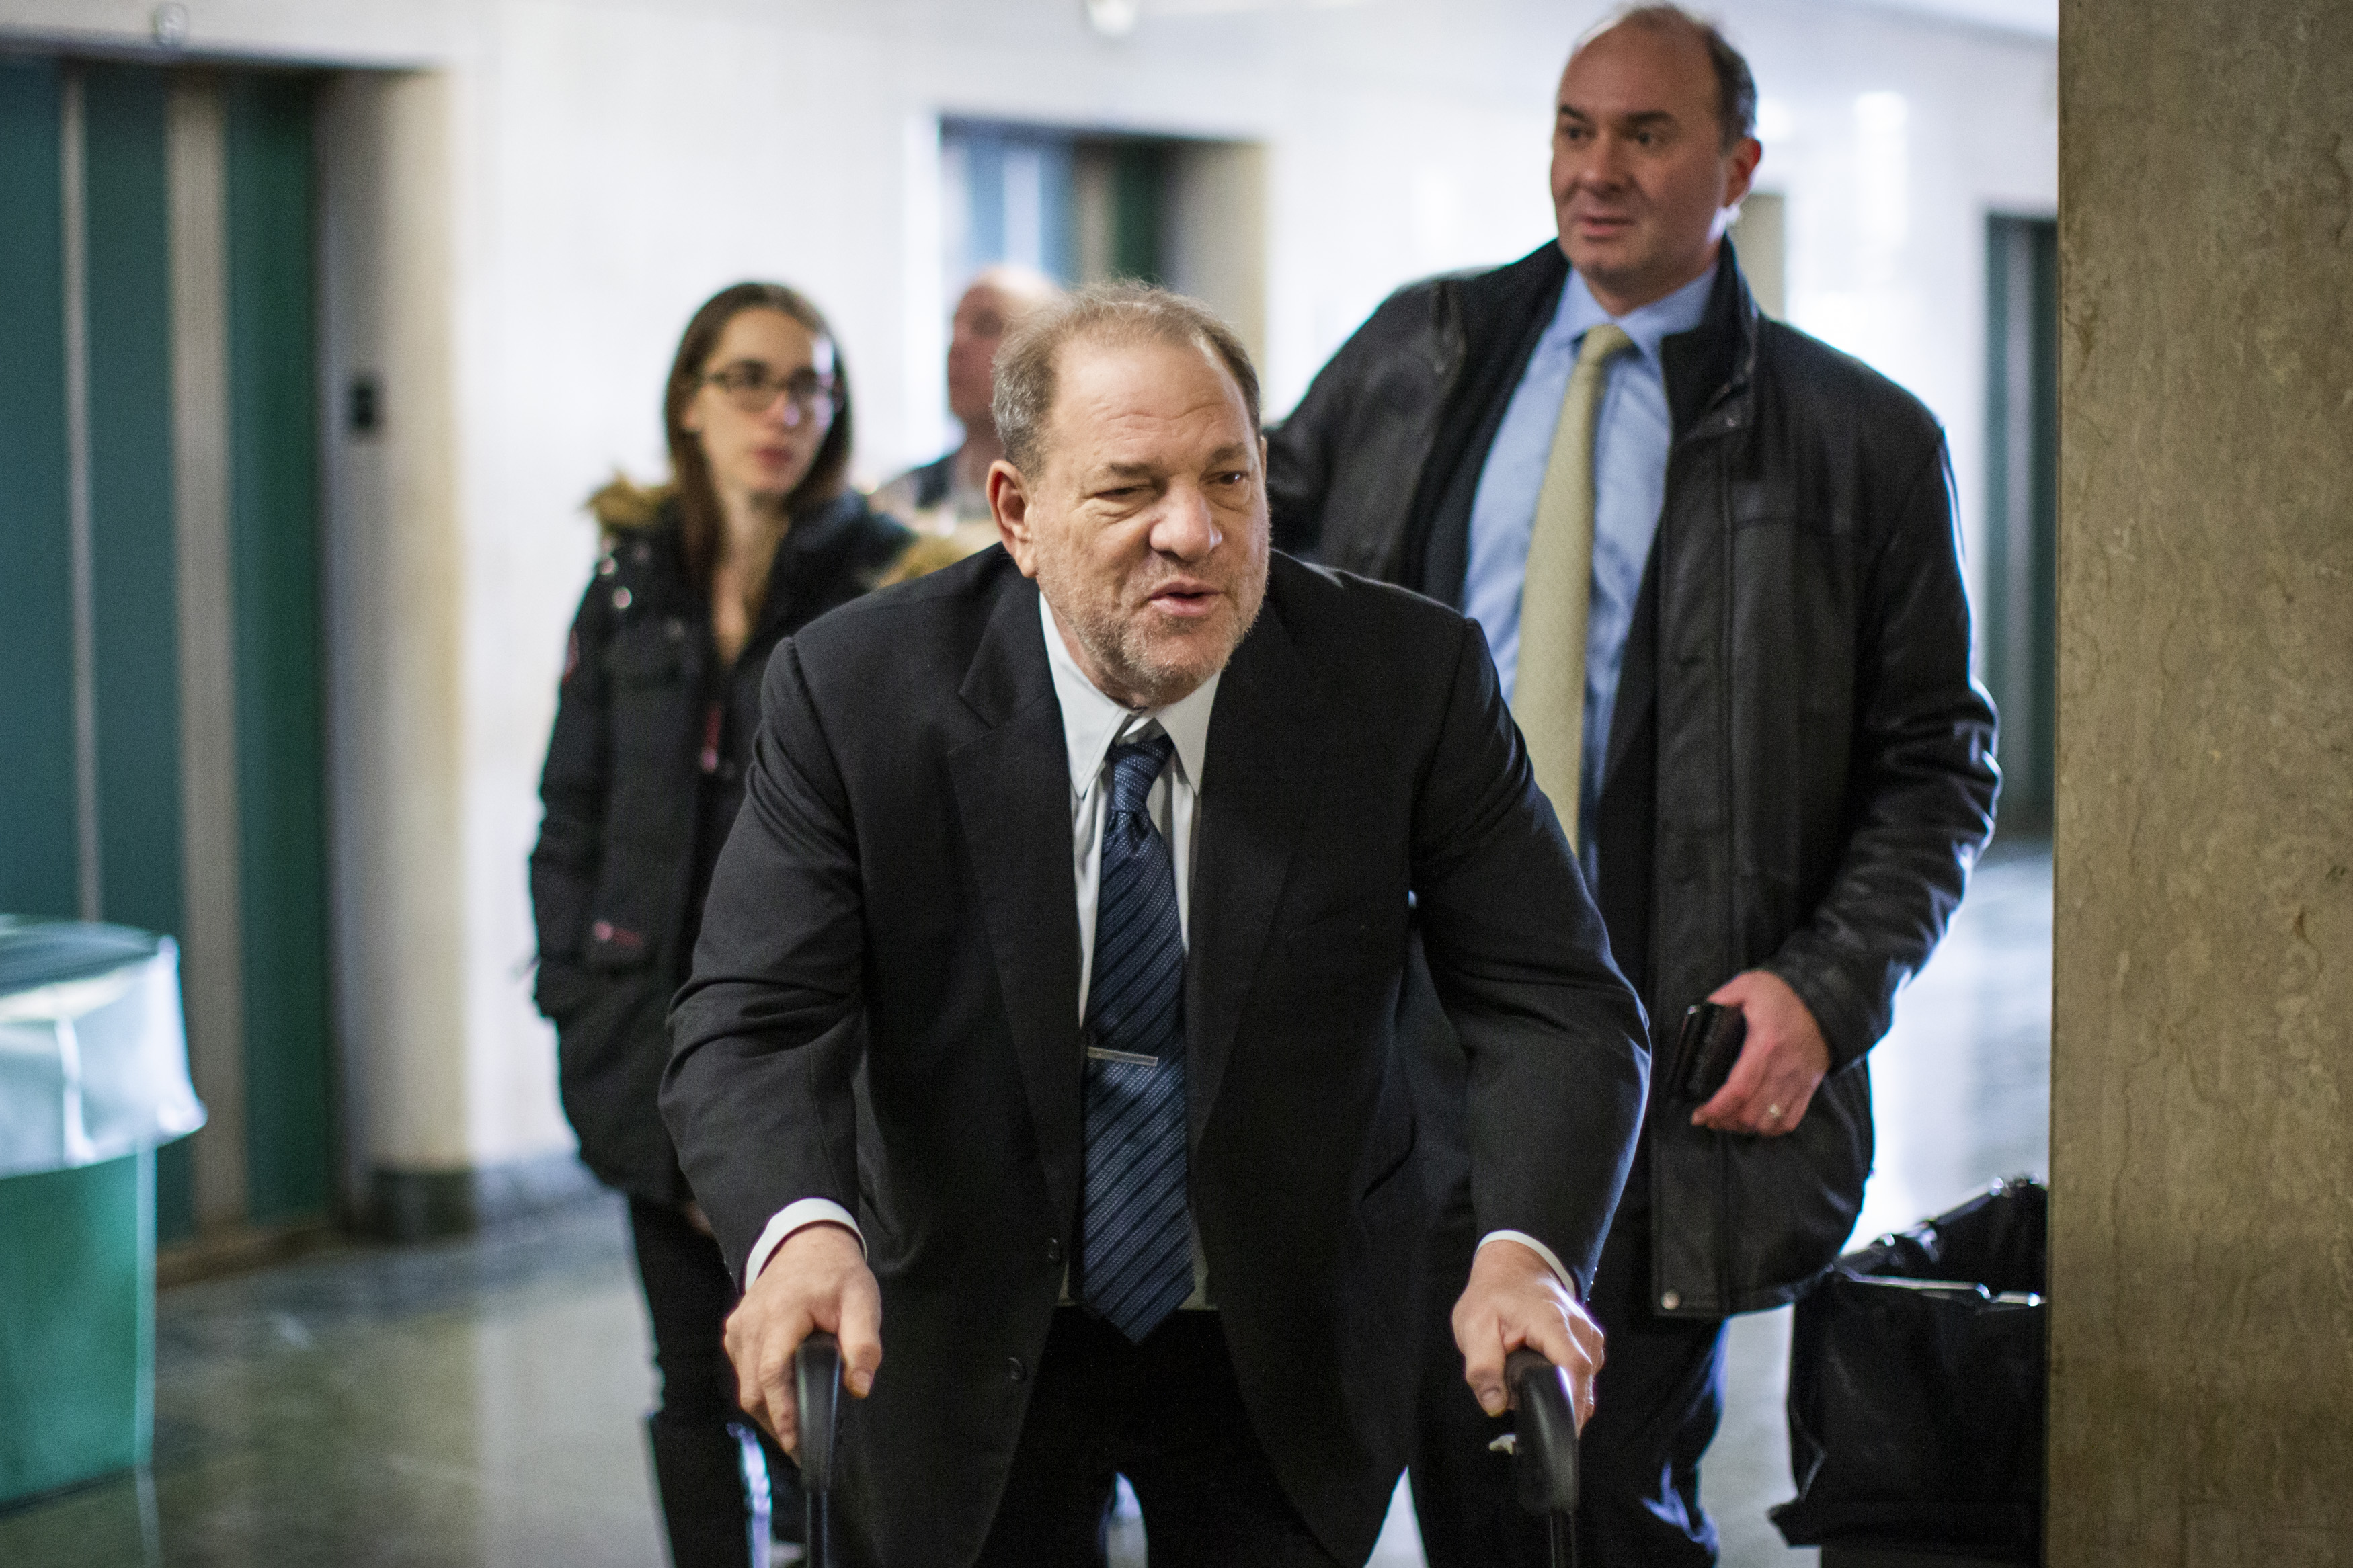 Harvey Weinstein arrives at the courtroom for his sexual assault trial at Manhattan criminal court on Feb. 3, 2020 in New York City